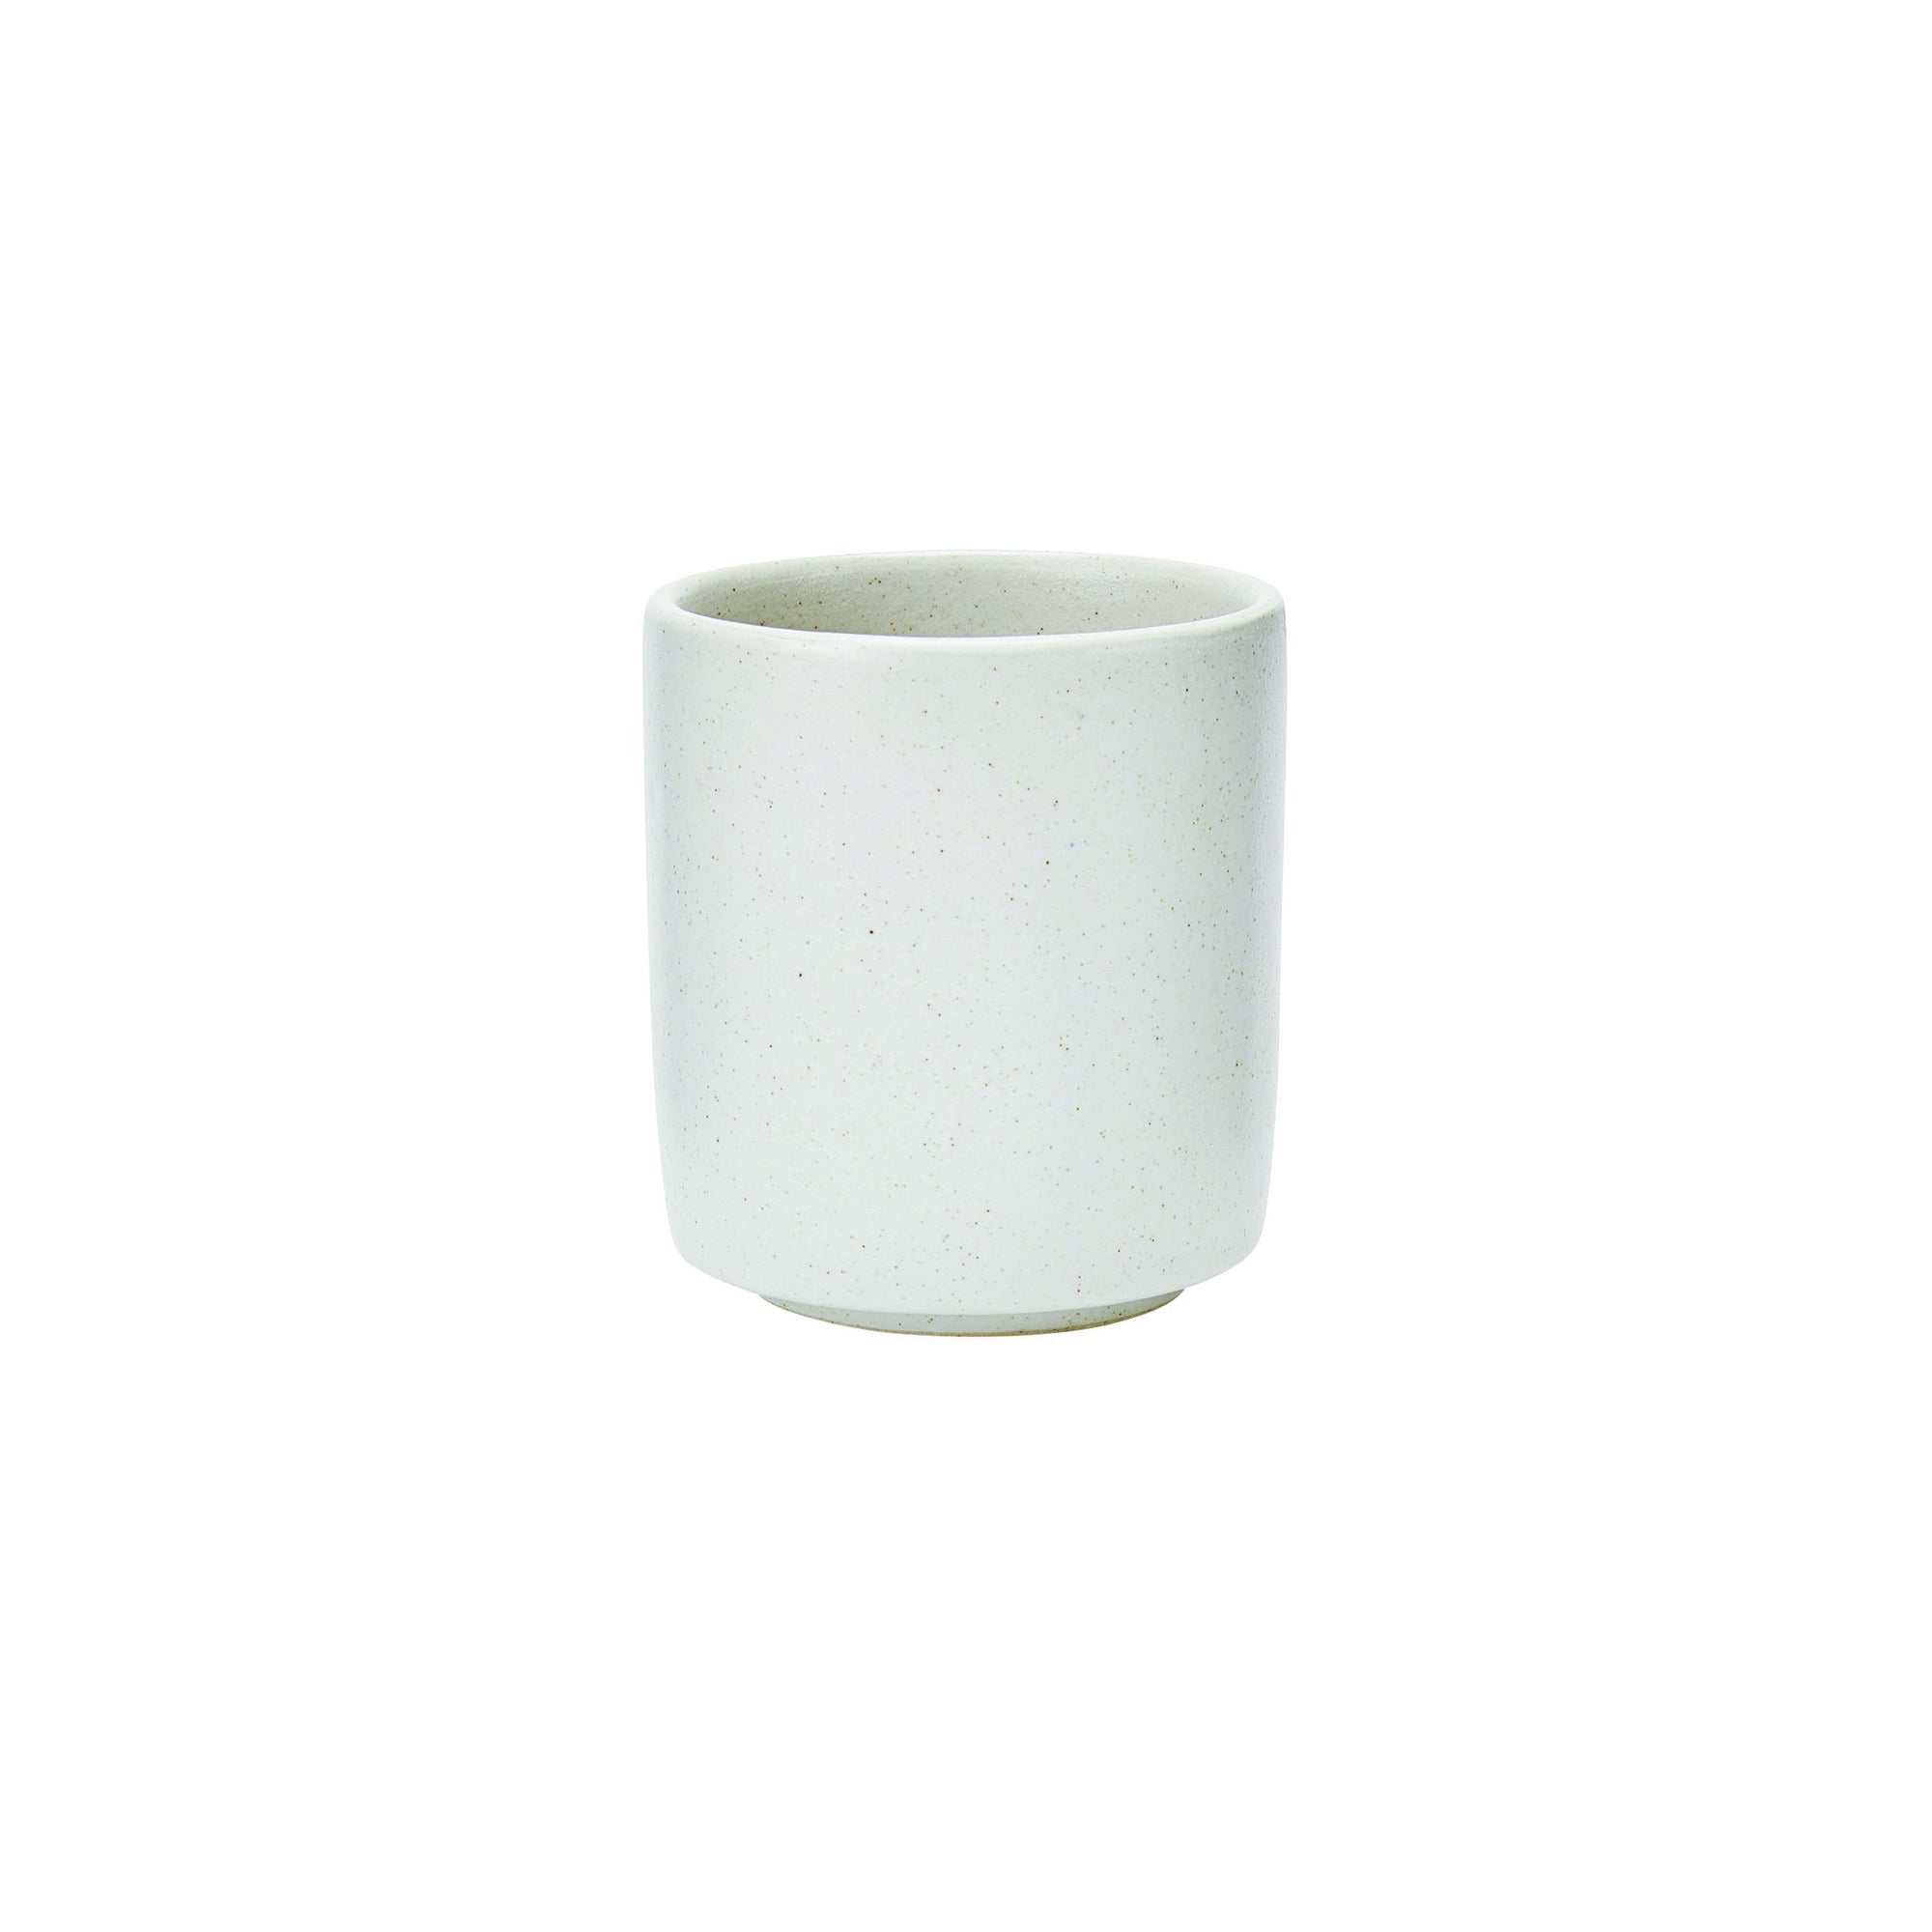 Speckled white tumbler (BSH1078)